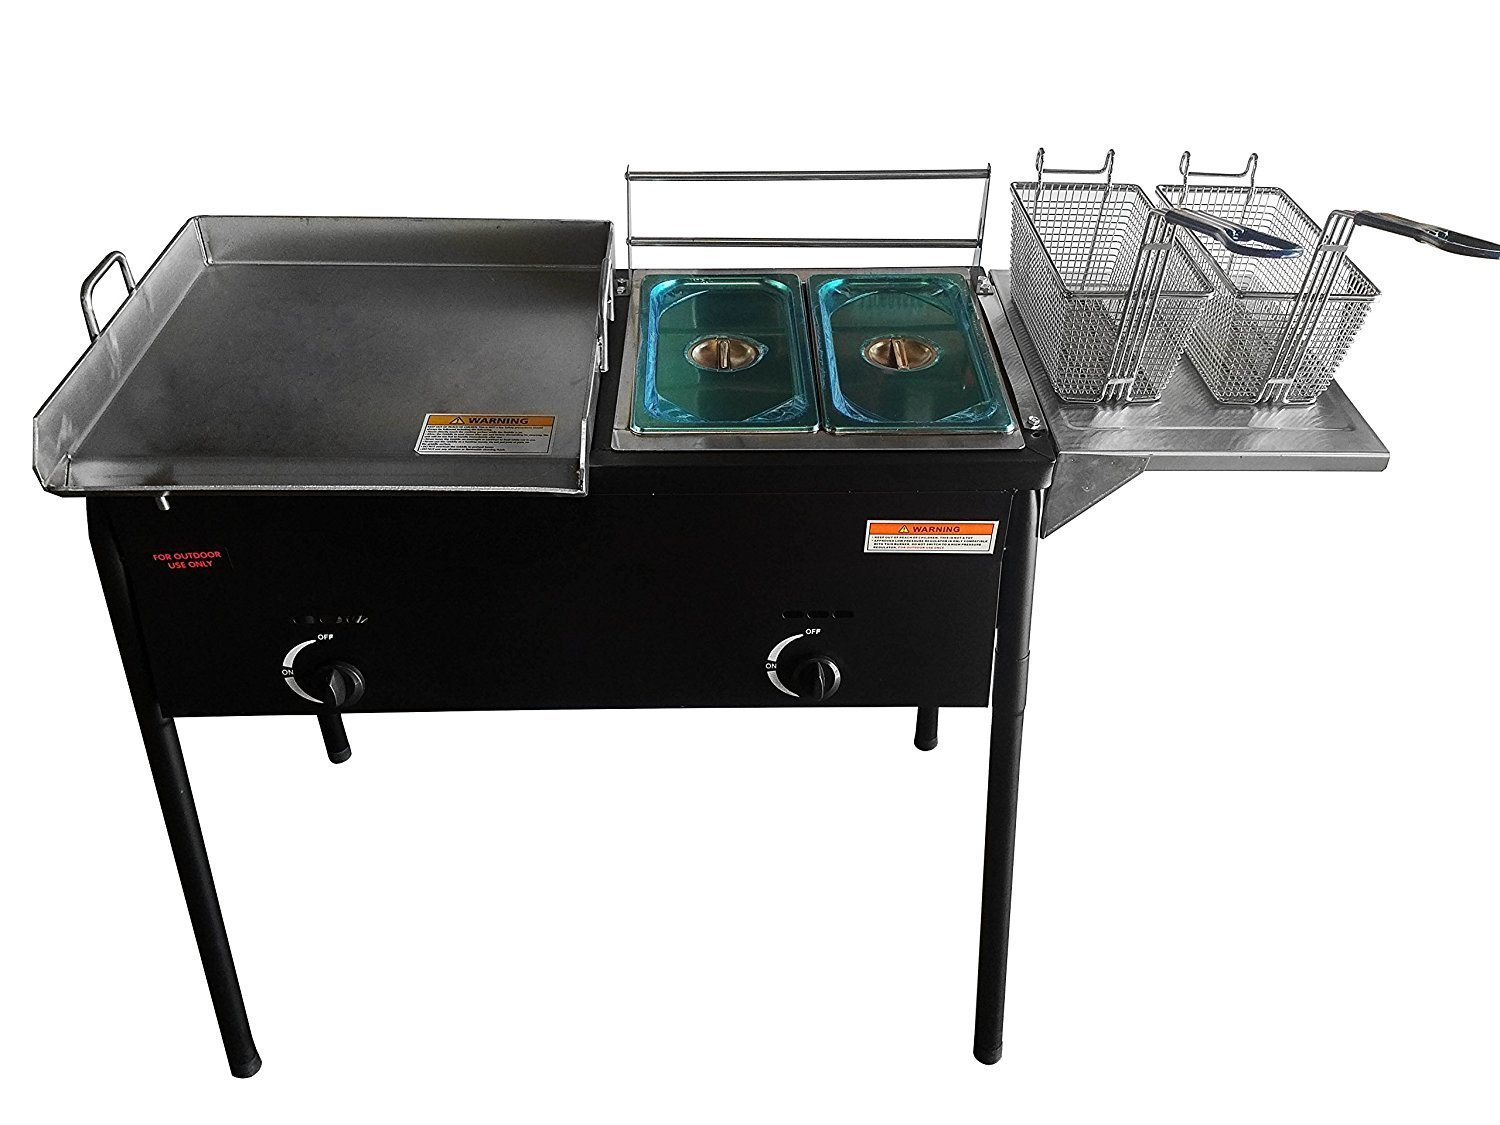 """Bioexcel Taco Cart with 18"""" X 16""""Stainless Steel Griddle - Portable Outdoor Heavy Duty Two Tank Double Deep Fryer, Propane Gas Dual Burner with 2 Deep Trays &Stove - All 3 in 1"""